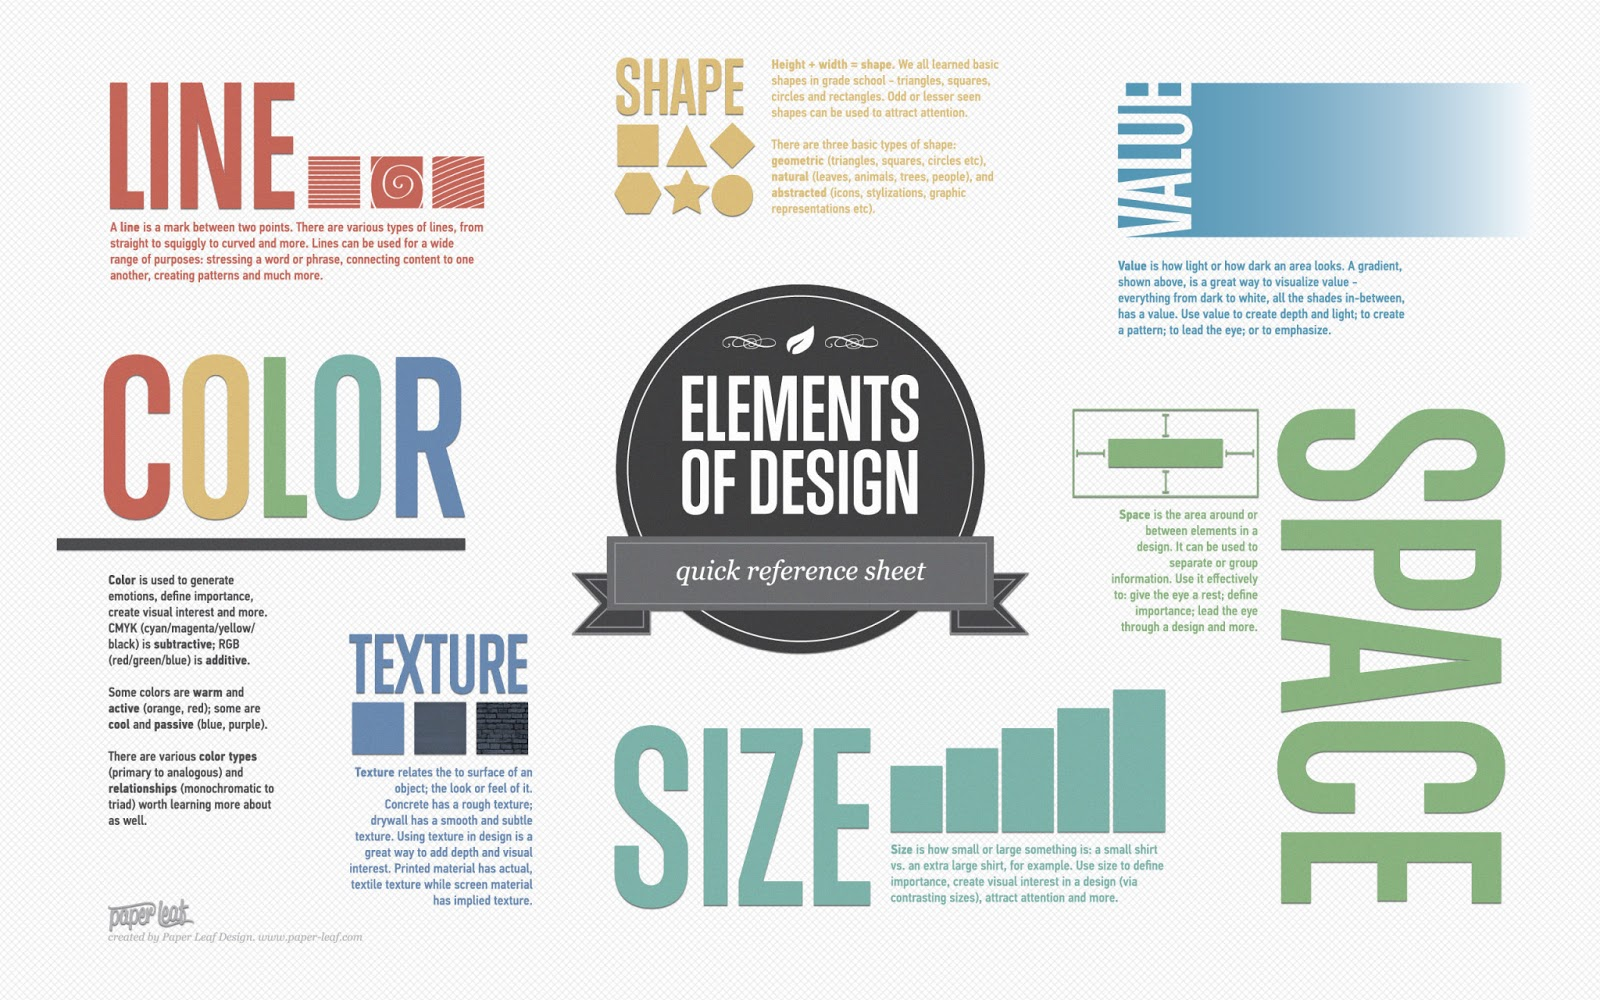 elements-of-design-infographic-iaq-graphic-design